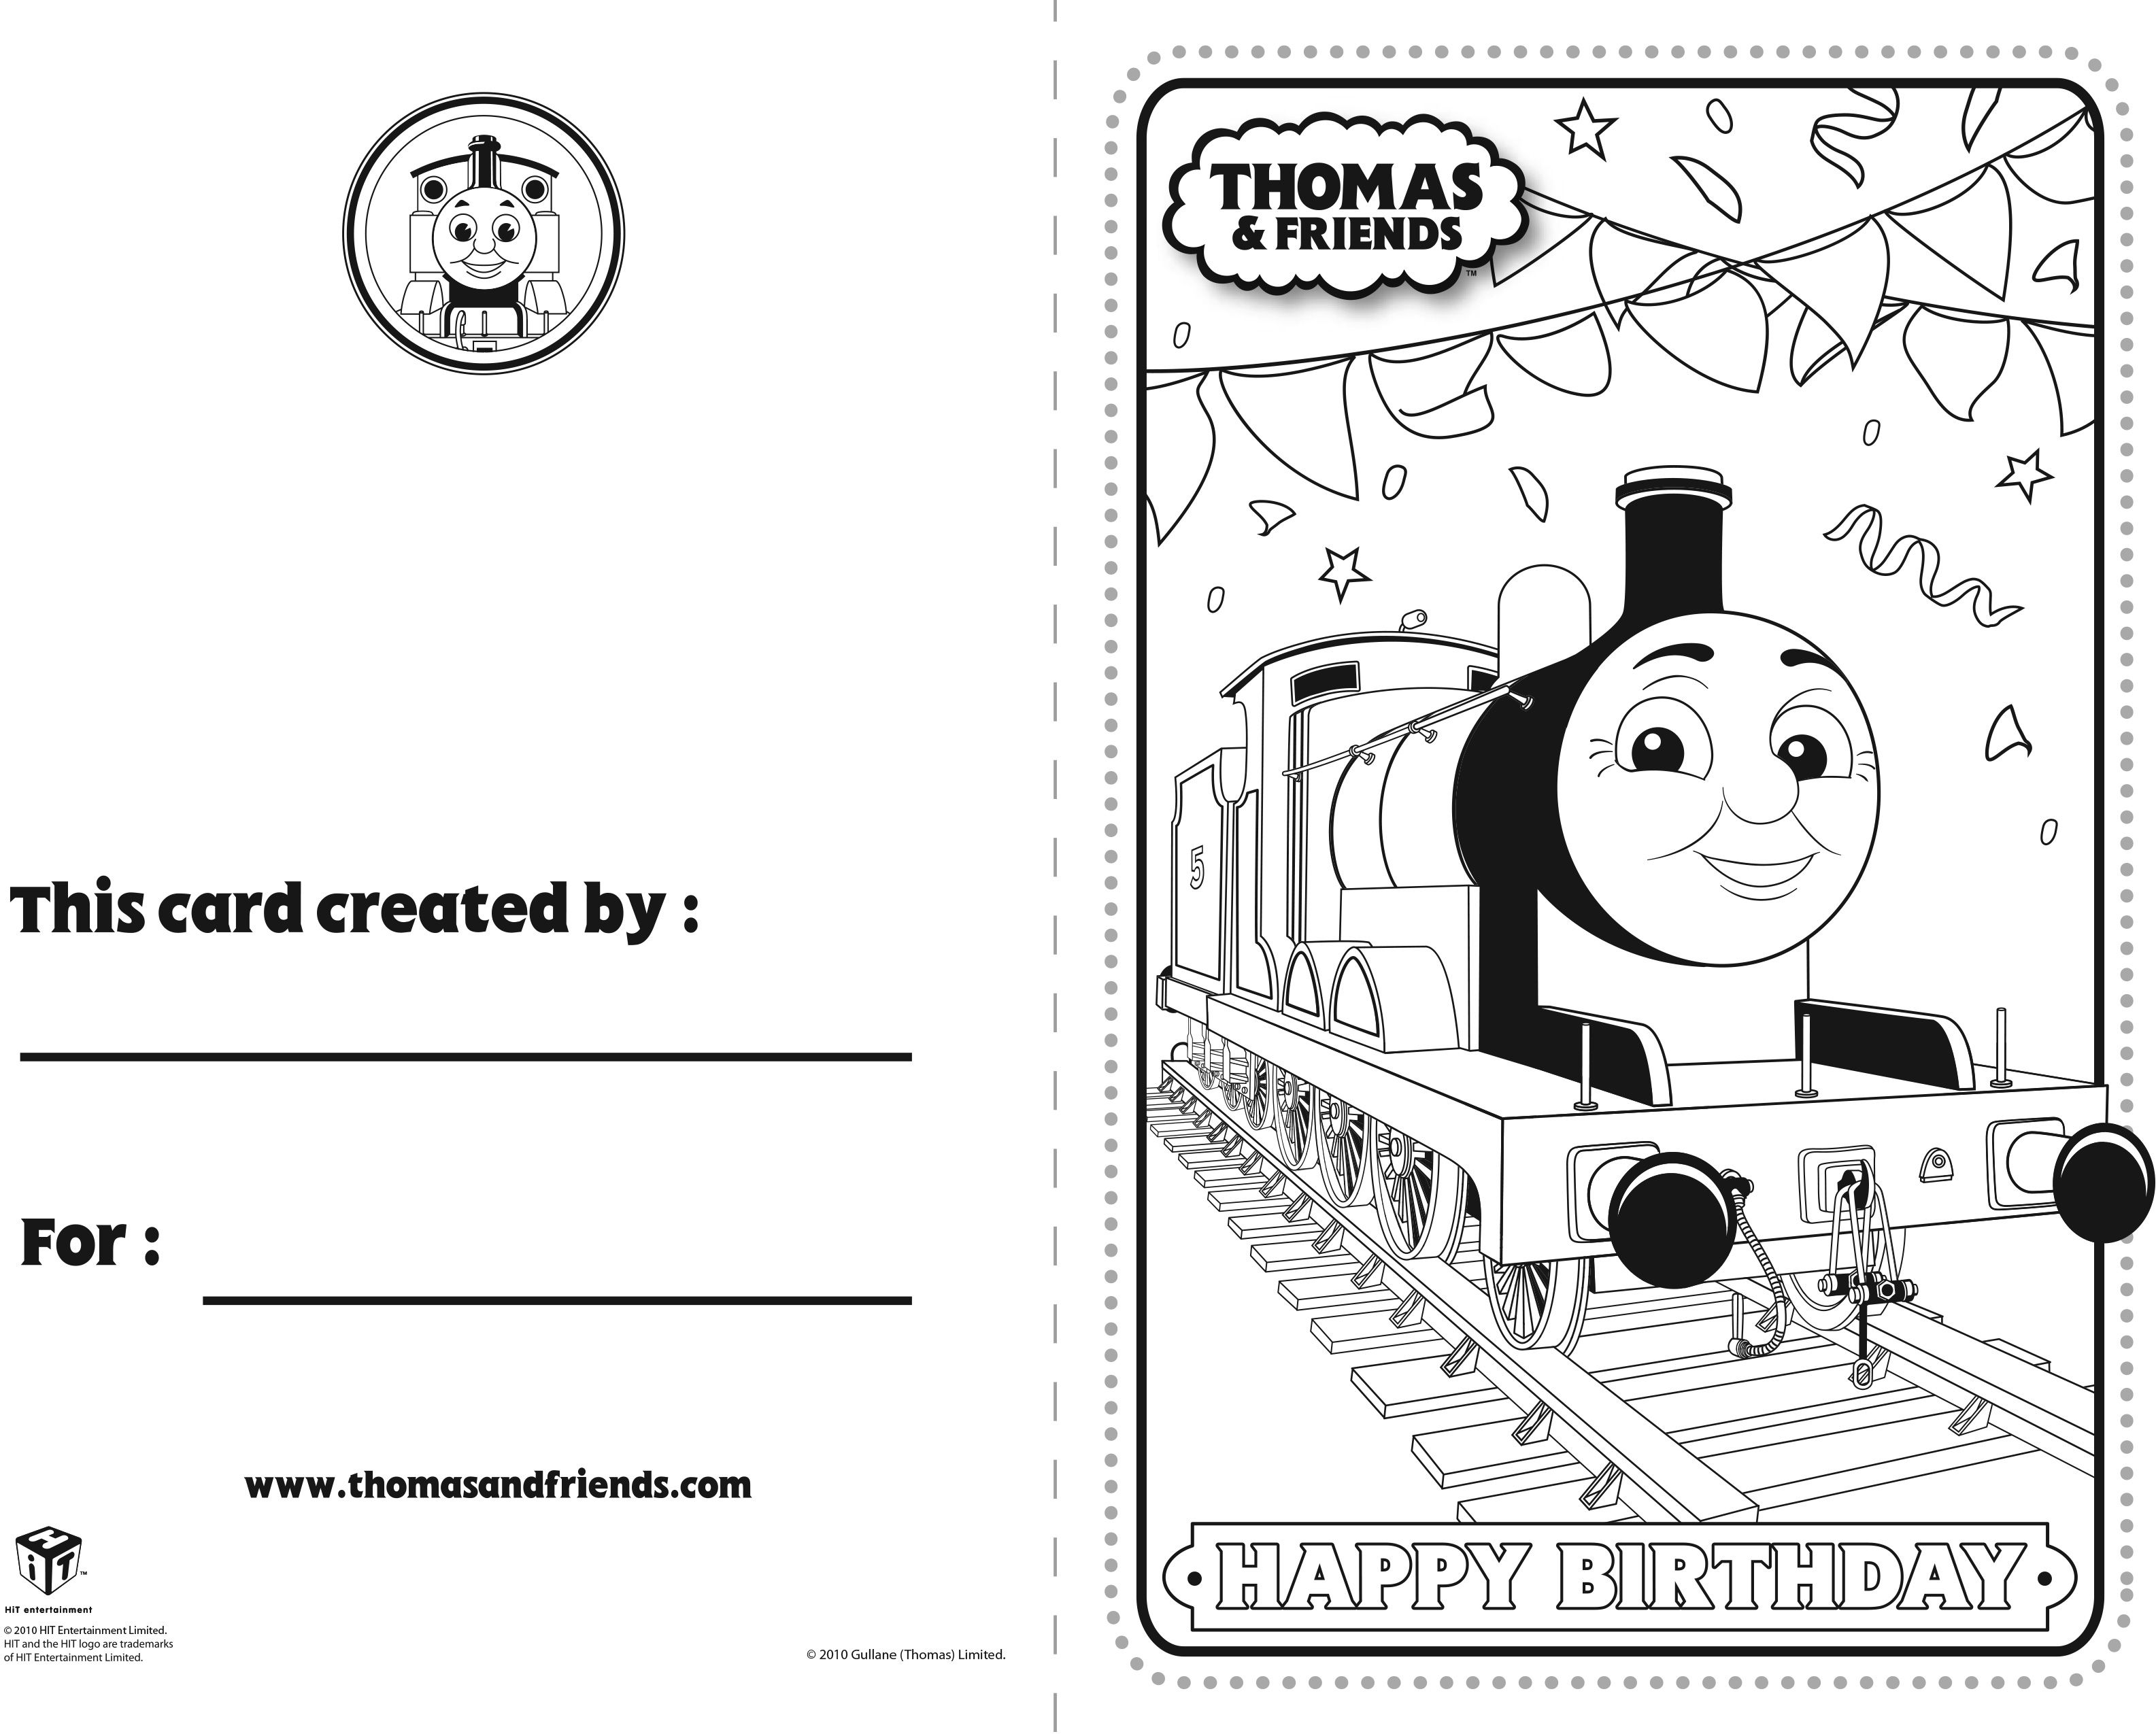 Thomas And Friends Birthday Card James Thomasandfriends Thomasthetankengine Birthdaycard Thomas And Friends Cards For Friends Birthday Cards For Friends